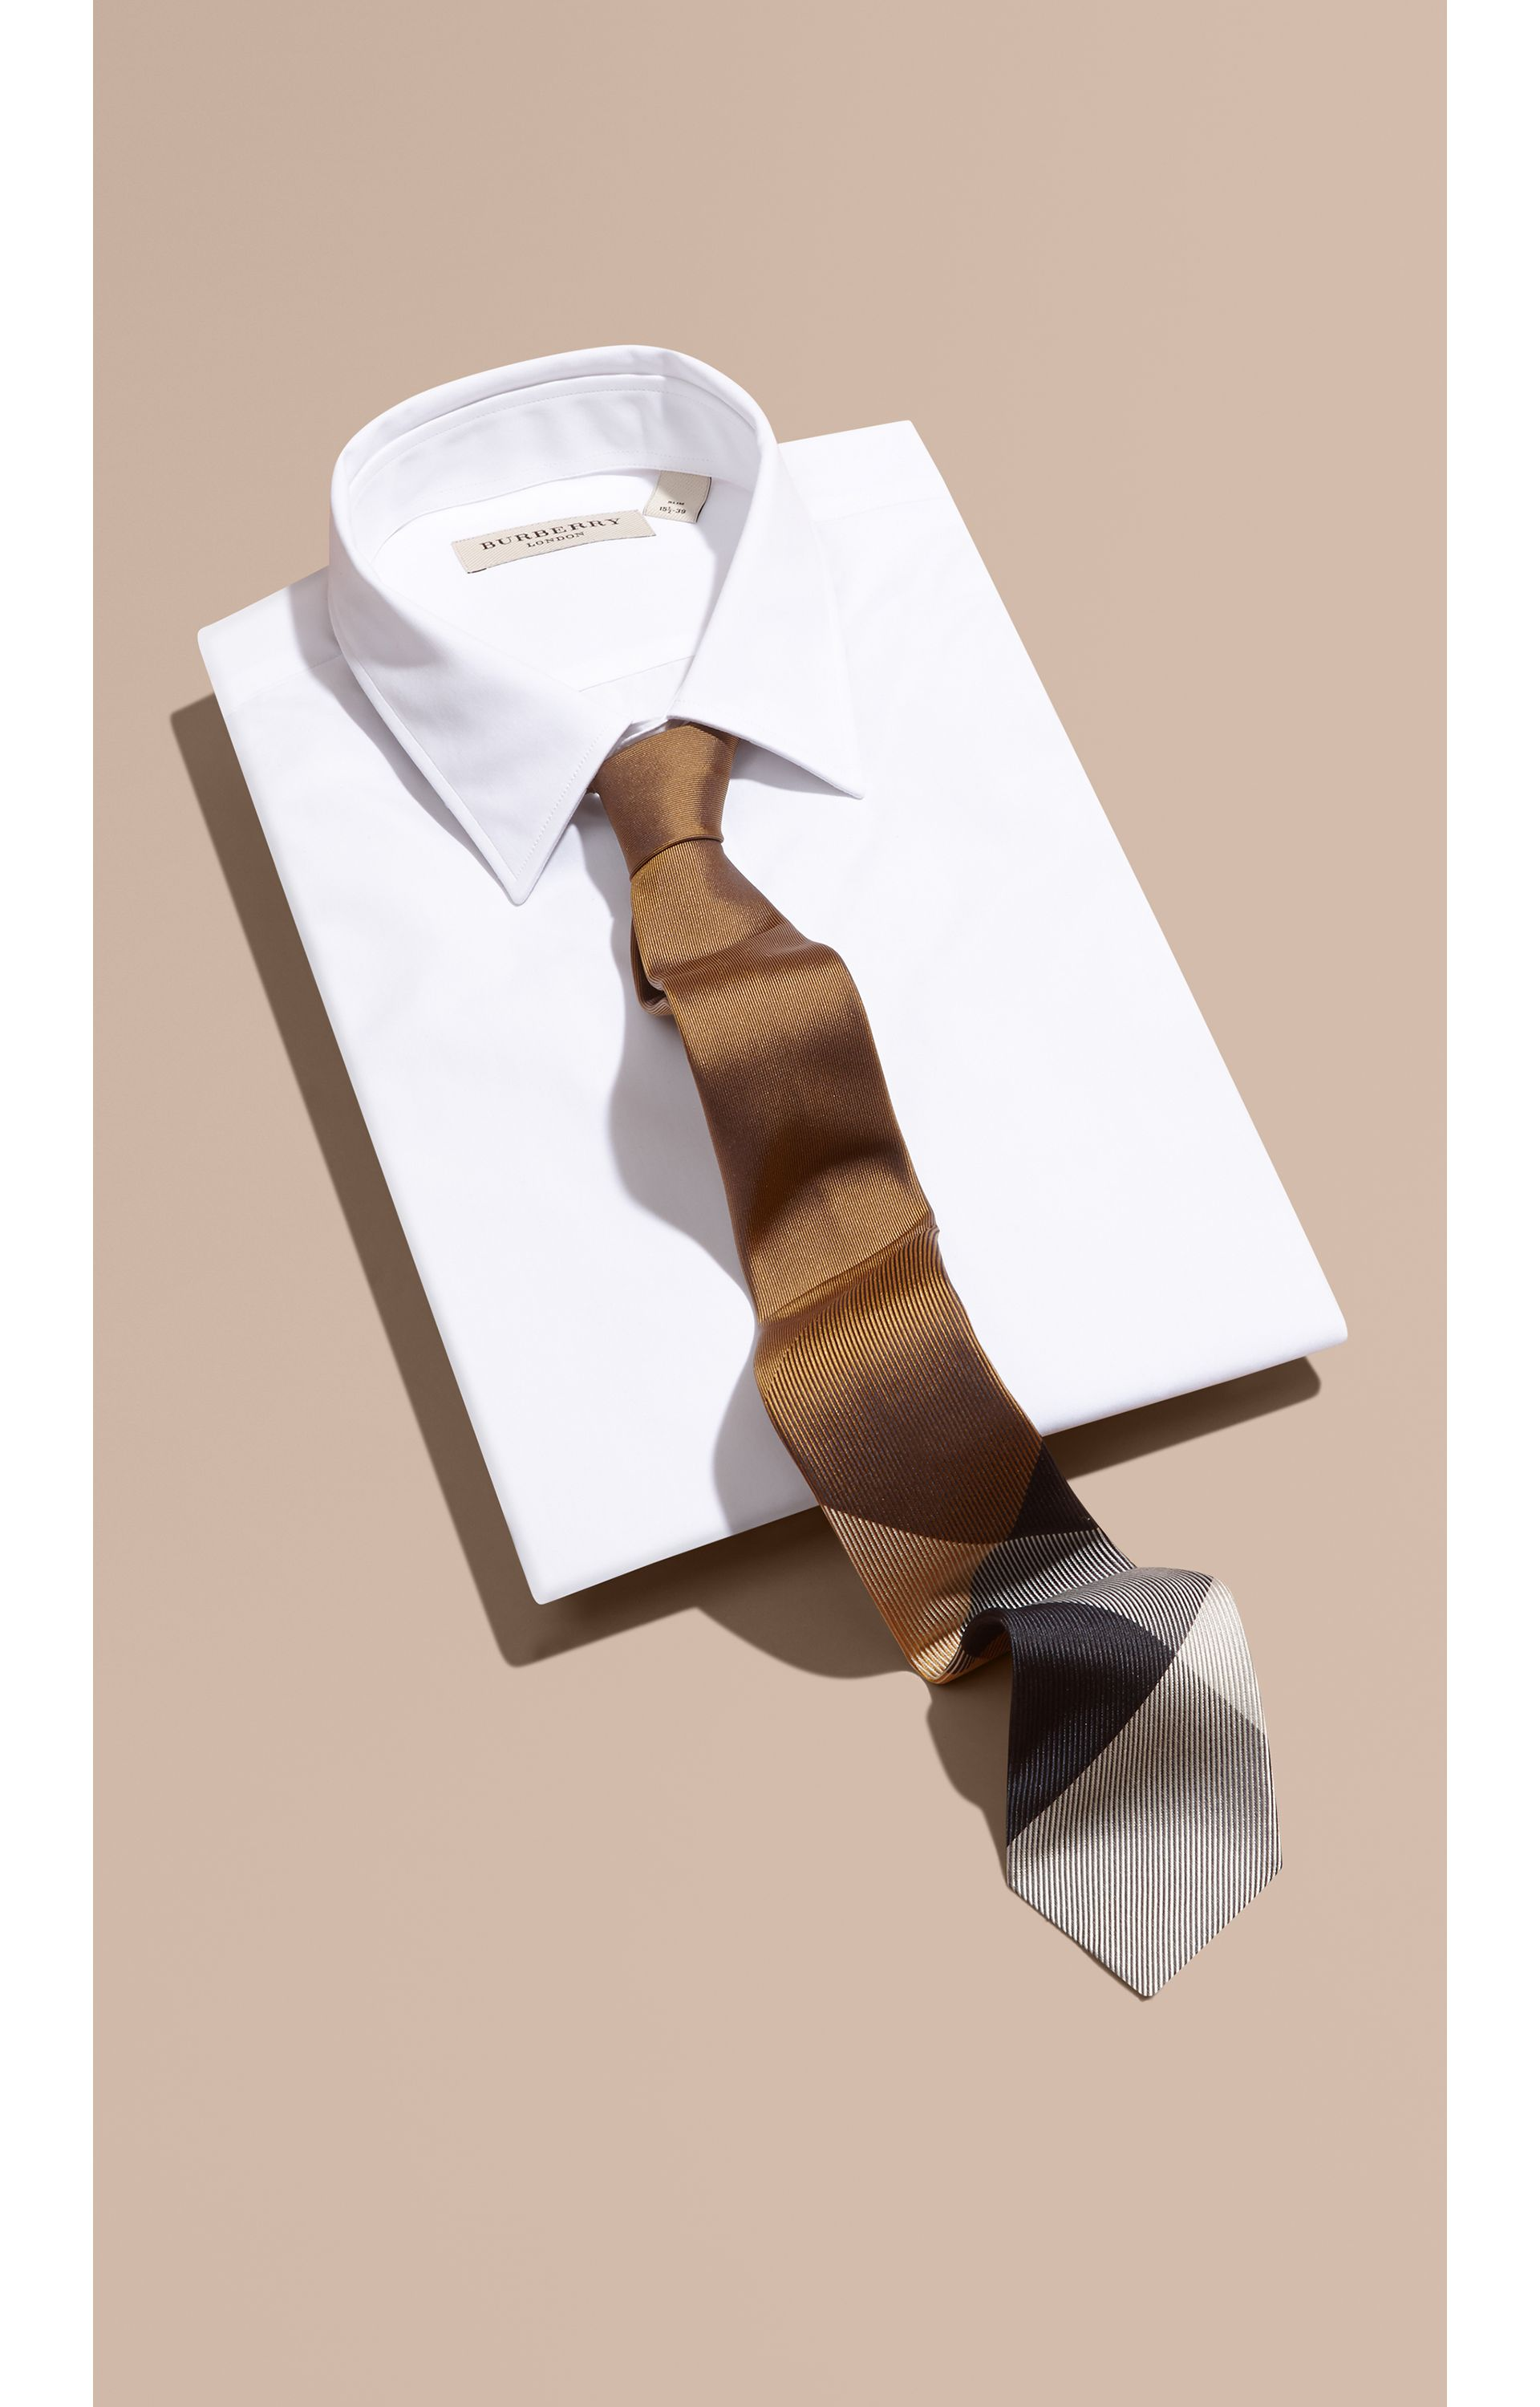 Ochre brown Modern Cut Check Jacquard Silk Tie Ochre Brown - gallery image 1